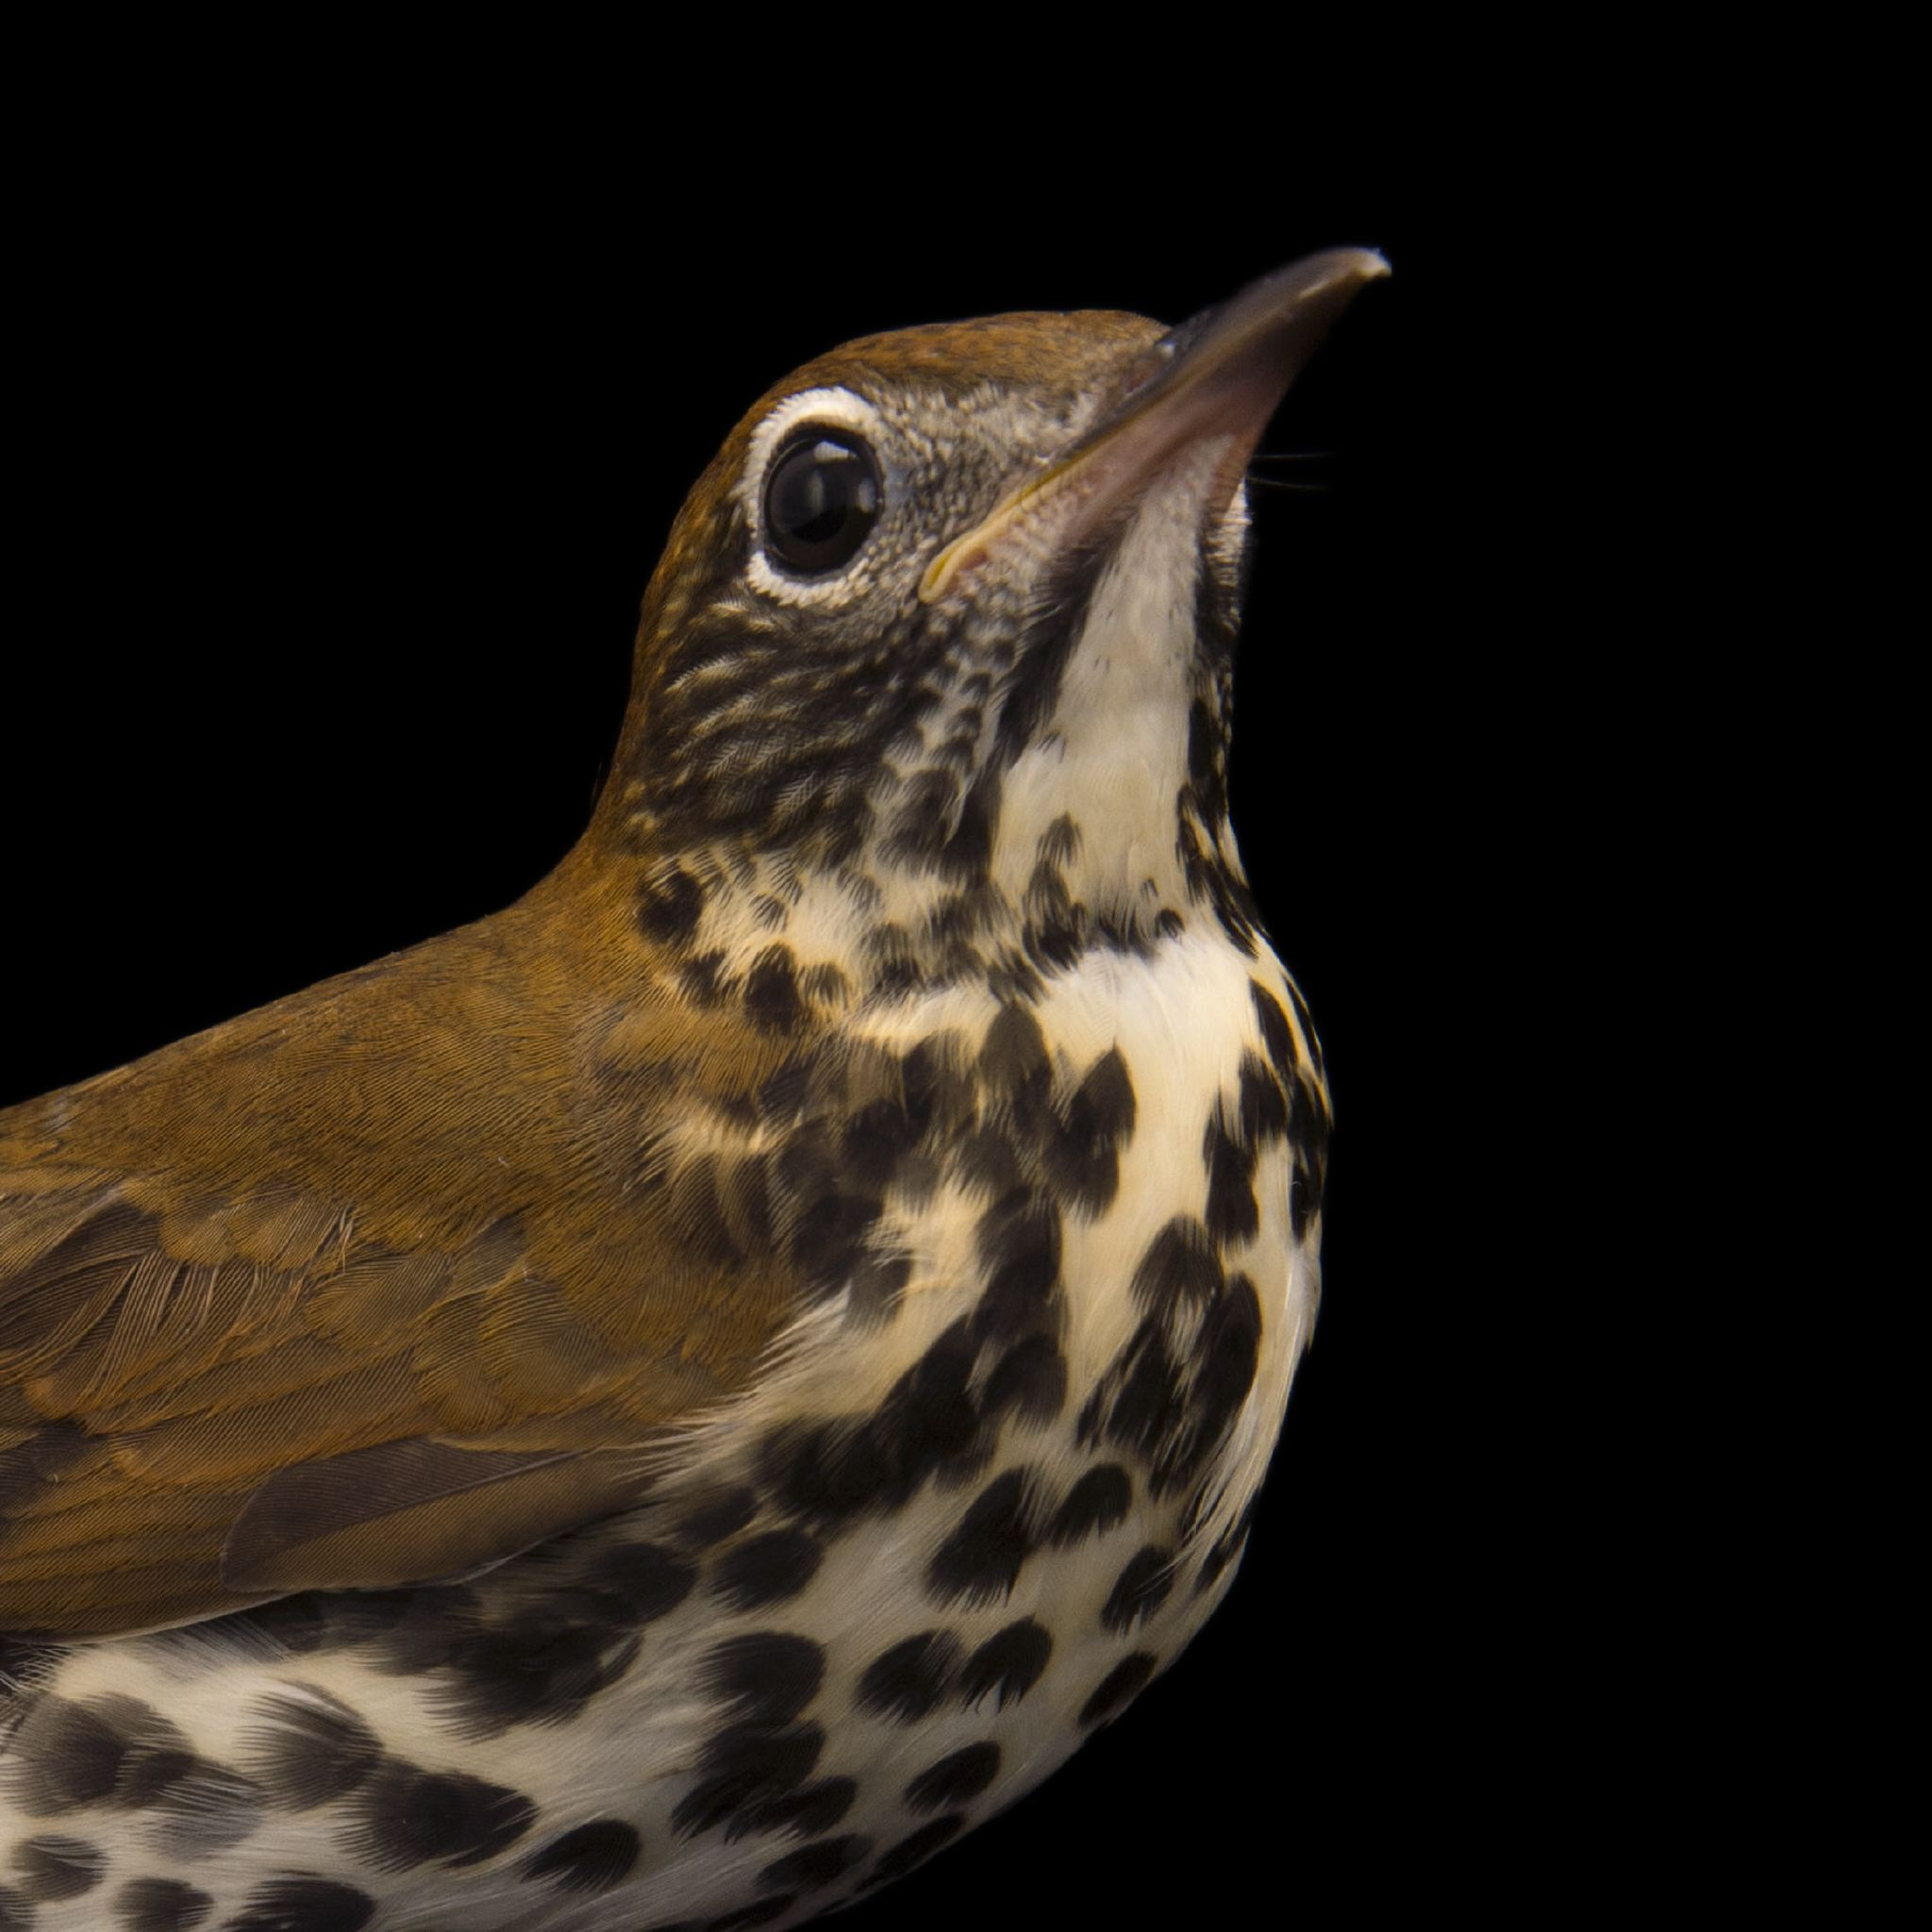 A wood thrush, Hylocichla mustelina, at St. Francis Wildlife Association.